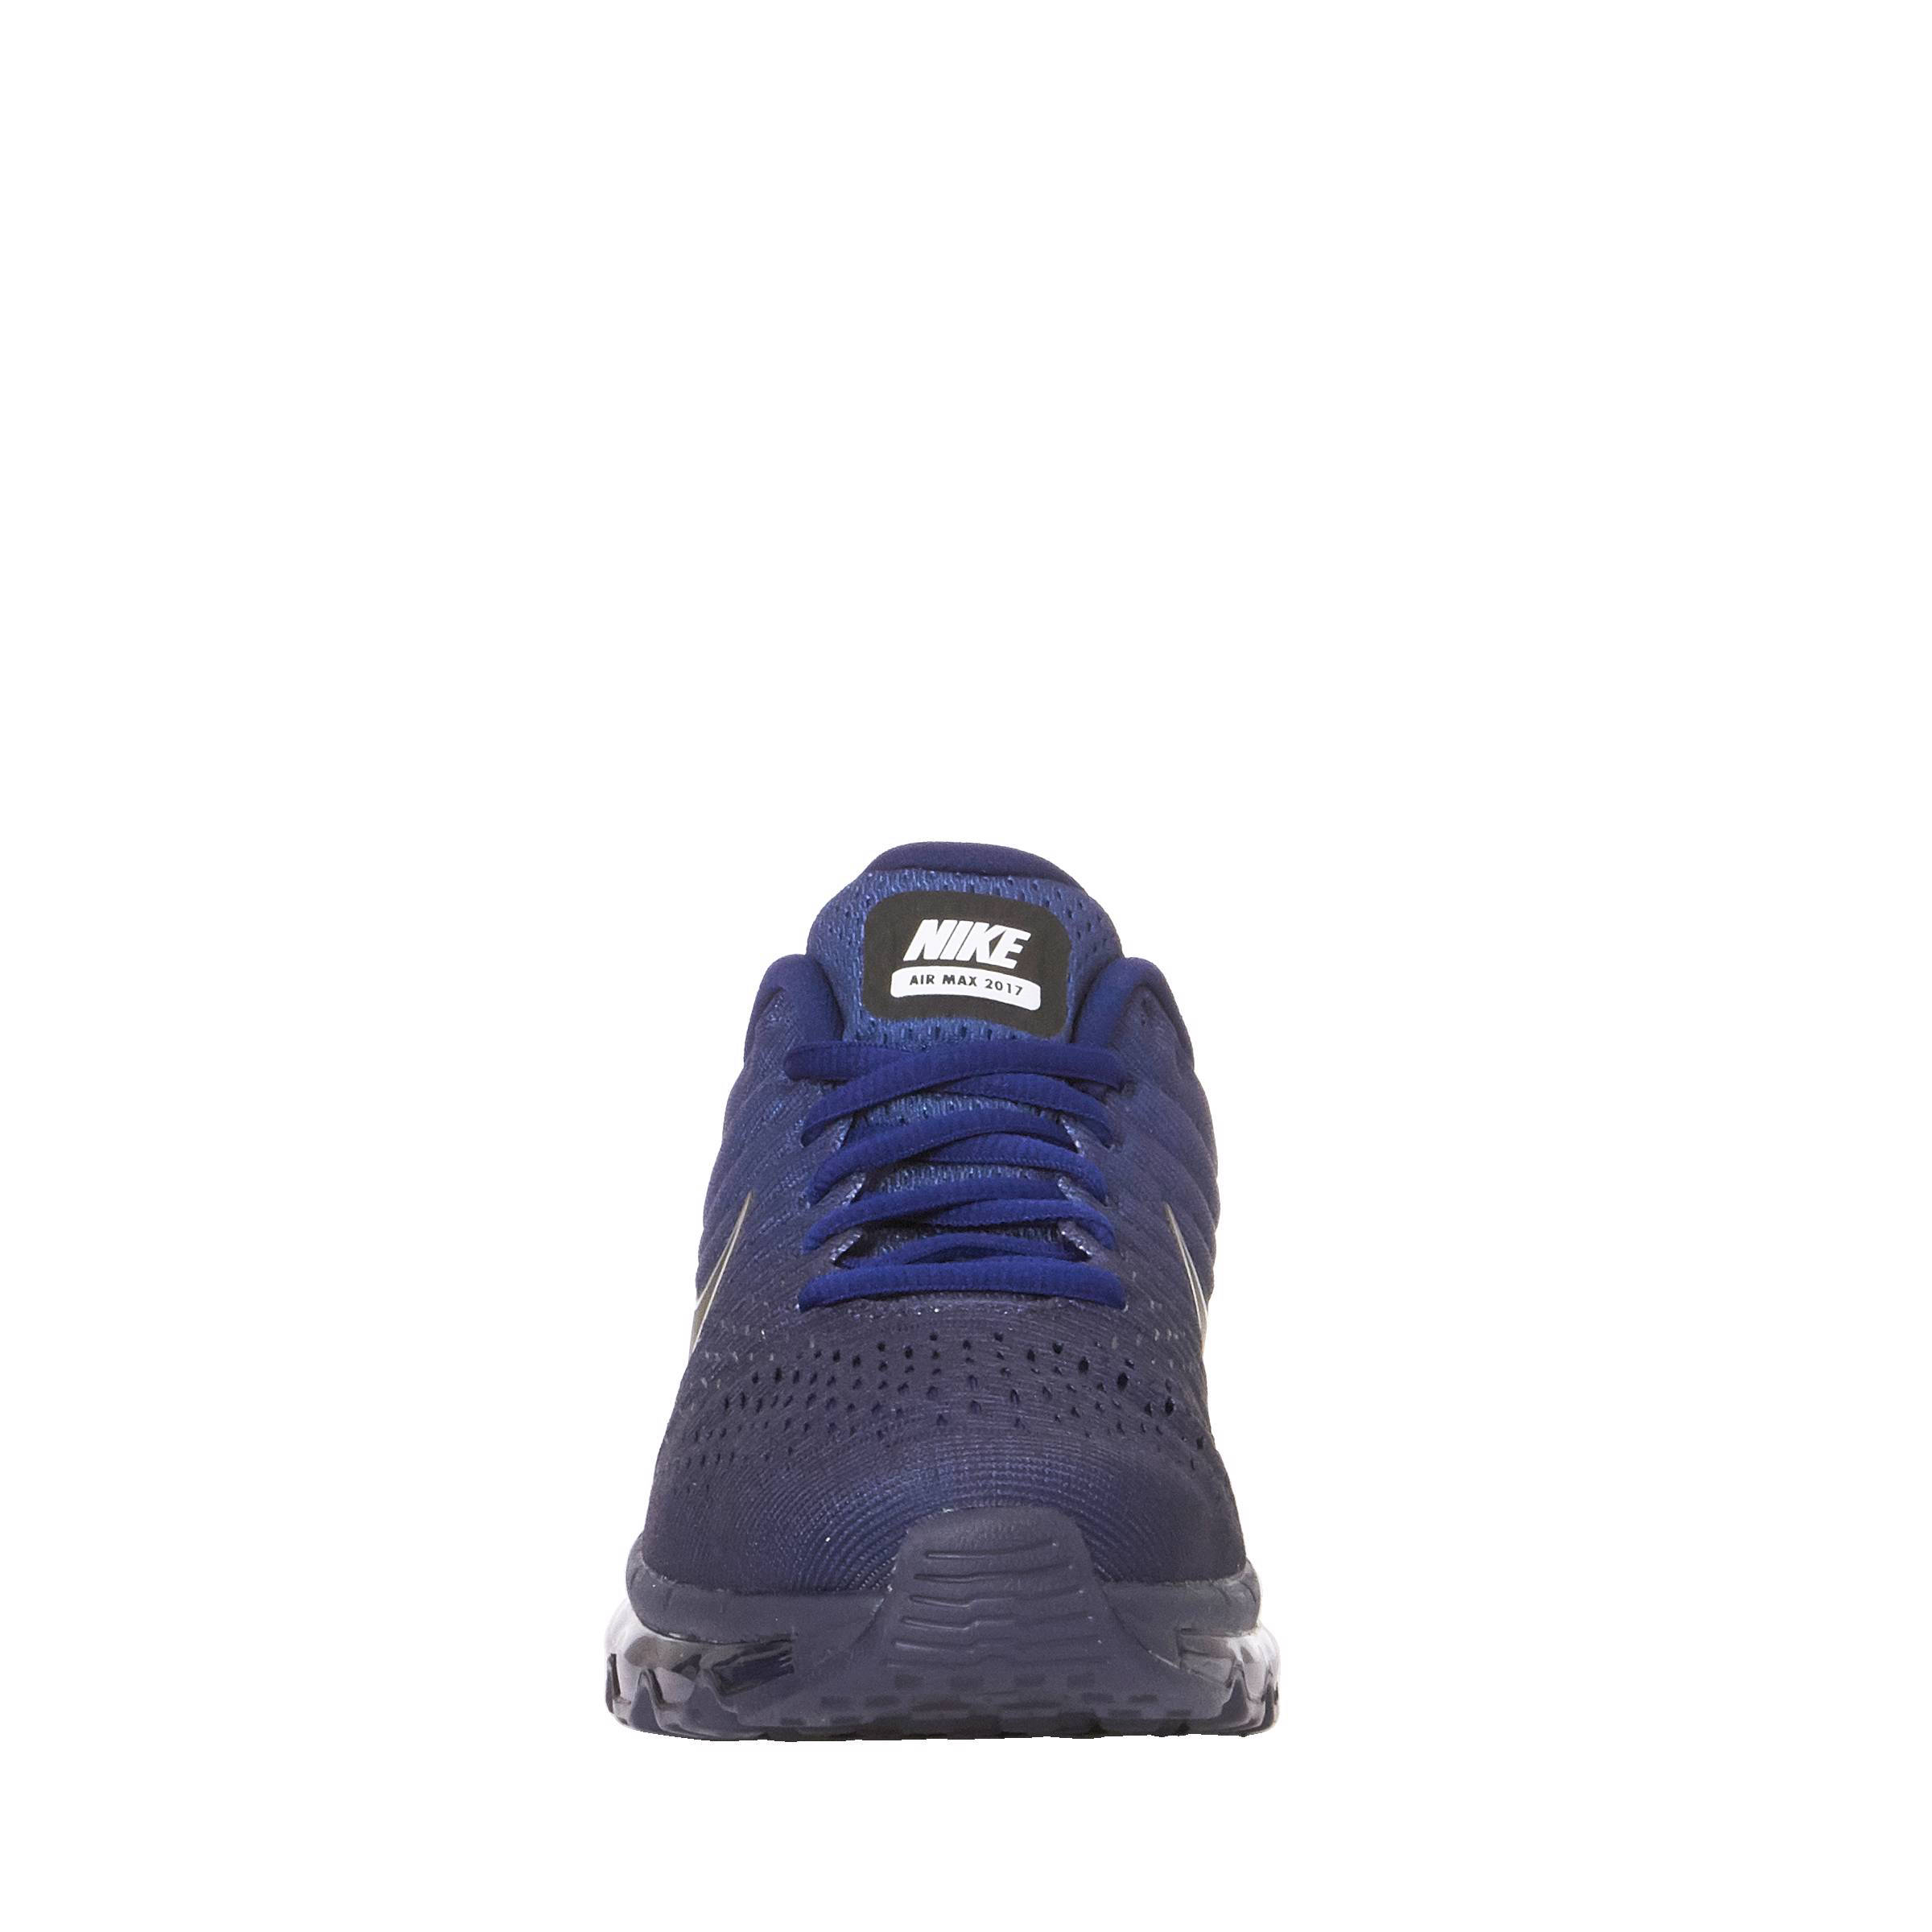 new style 837be 0361f nike-air-max-2017-sneakers-donkerblauw-0887225864835.jpg